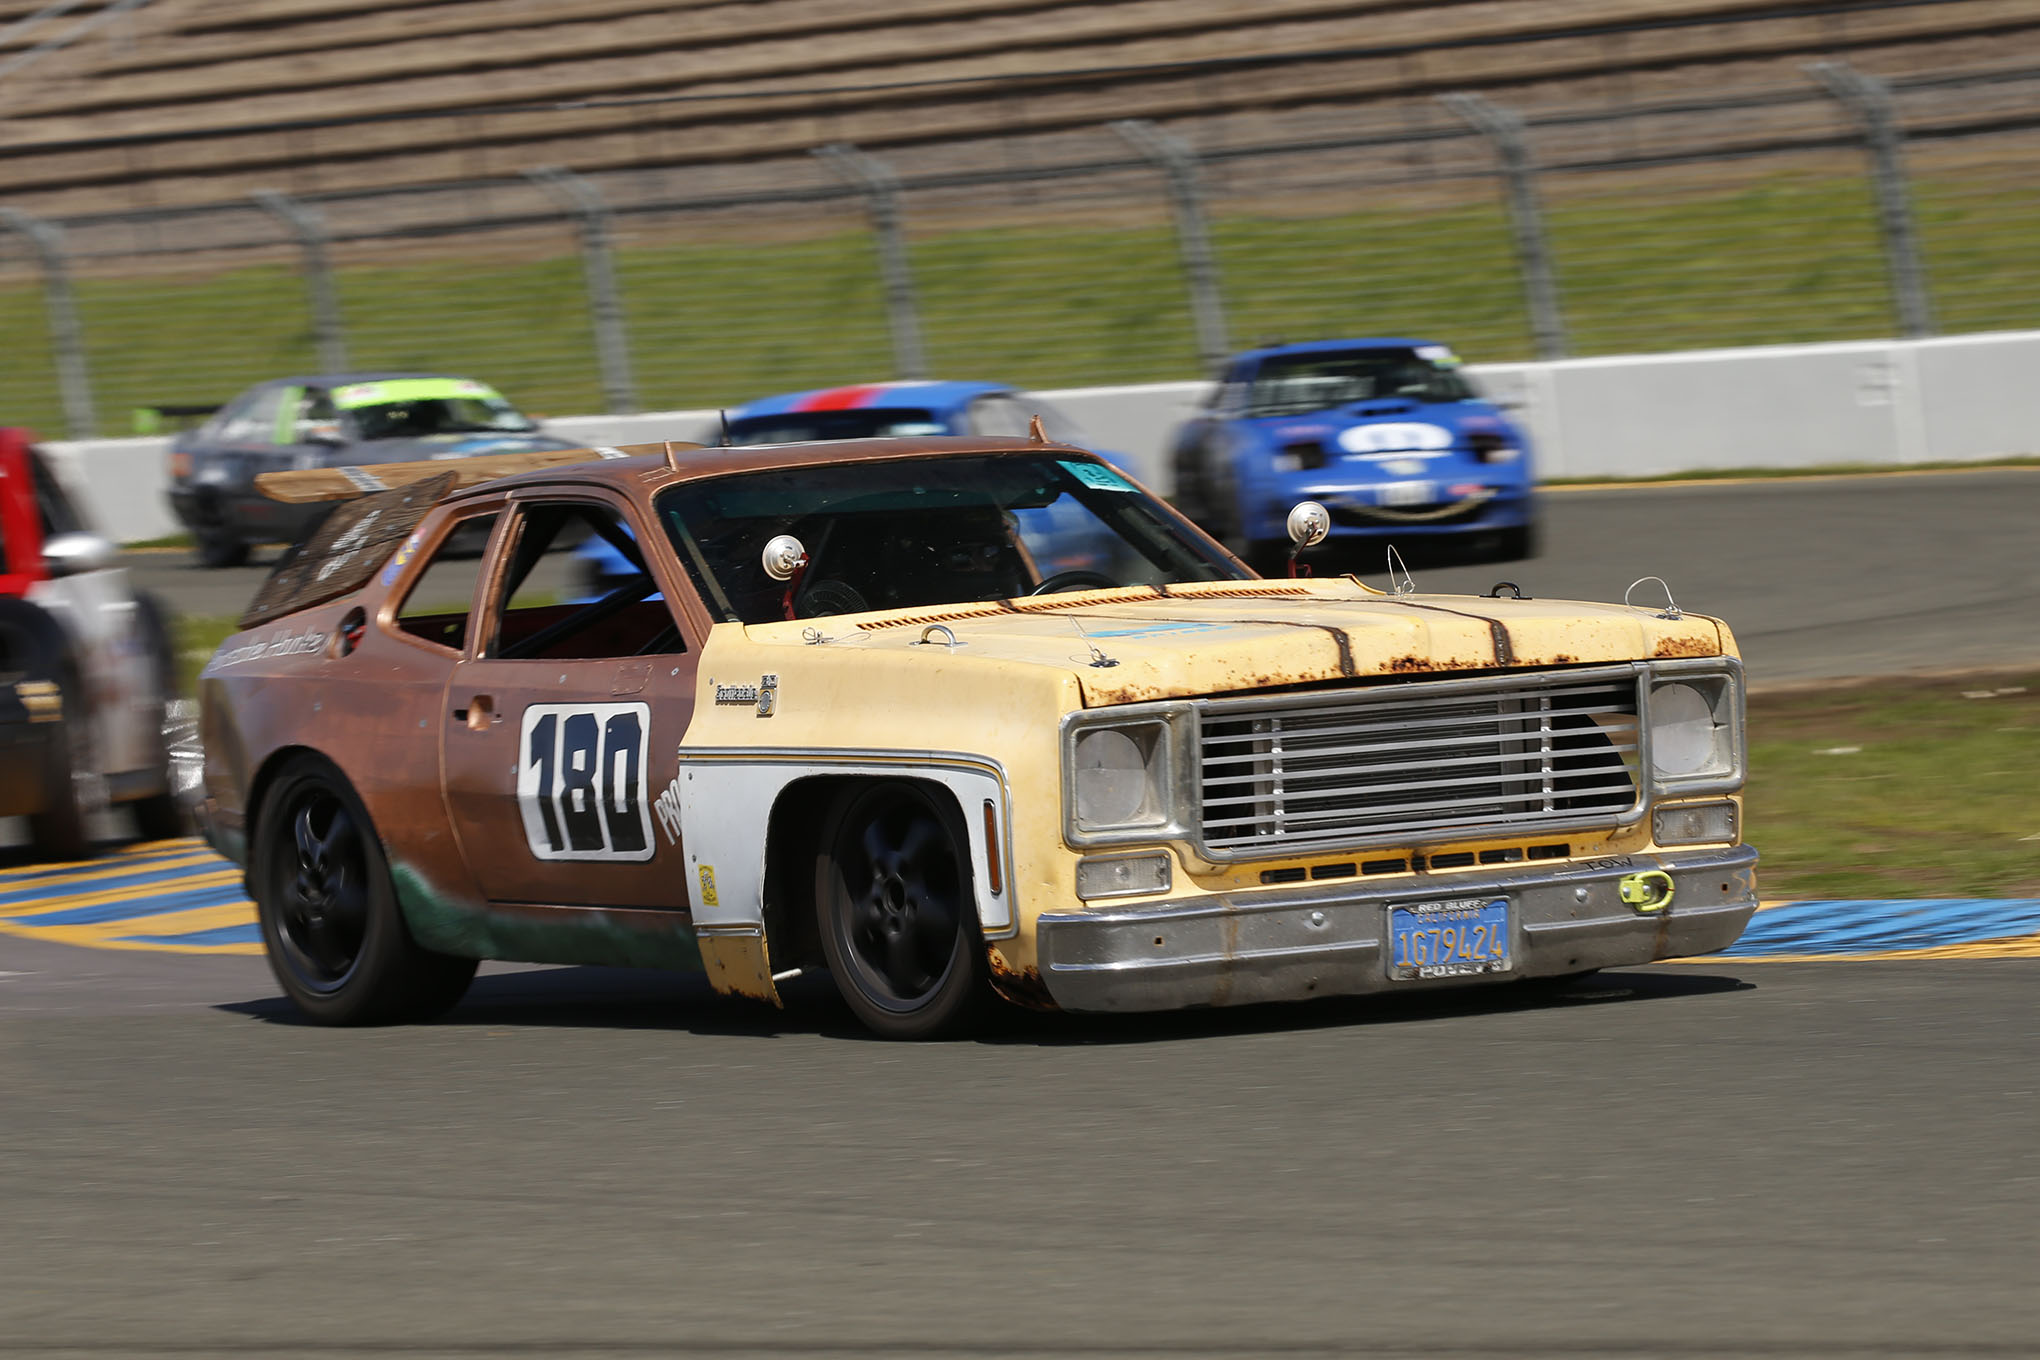 The Greatest New Lemons Cars Of 2018 Season 24 Hours 1964 Ford F100 Steering Column Wiring Sure It Finished Dead Effing Last When Debuted At Sears Pointless But Weve Got A Soft Spot For Hammered Full Size Truck